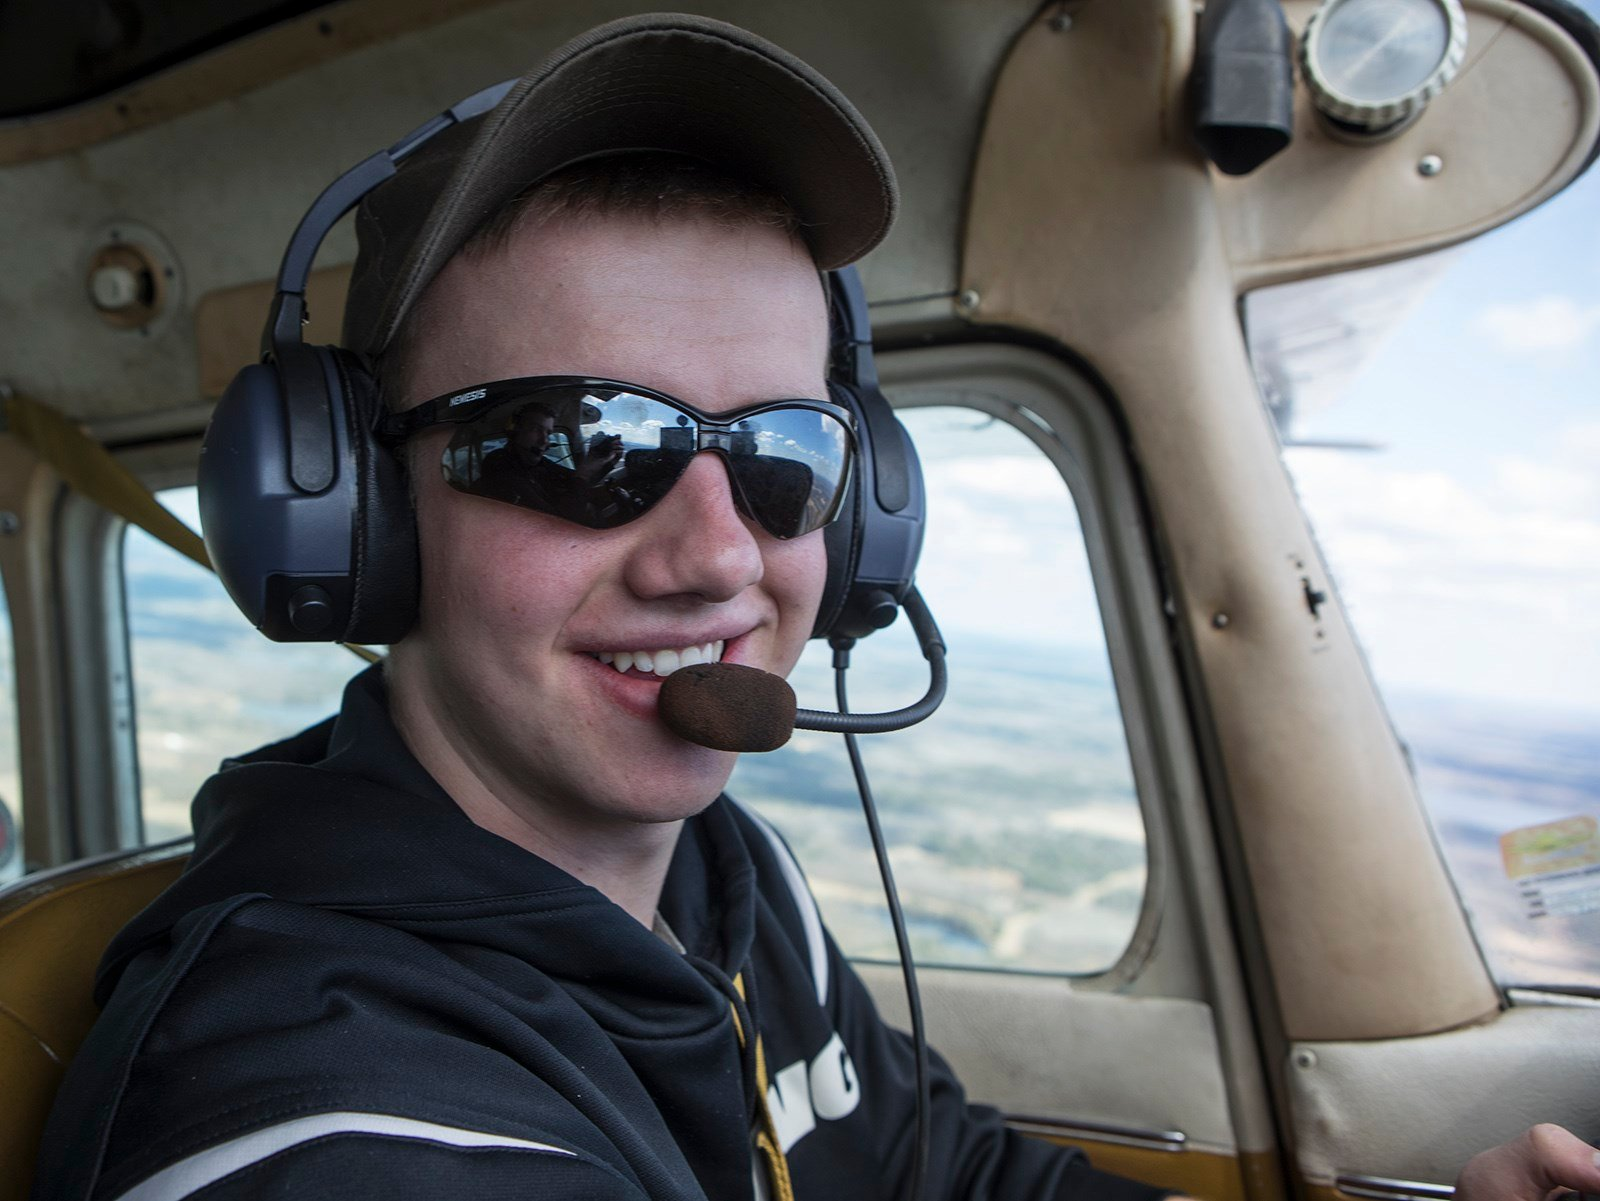 Owen Knutson is seen in this photo during a flight in mid-May, Courtesy: BanksPhotos.com